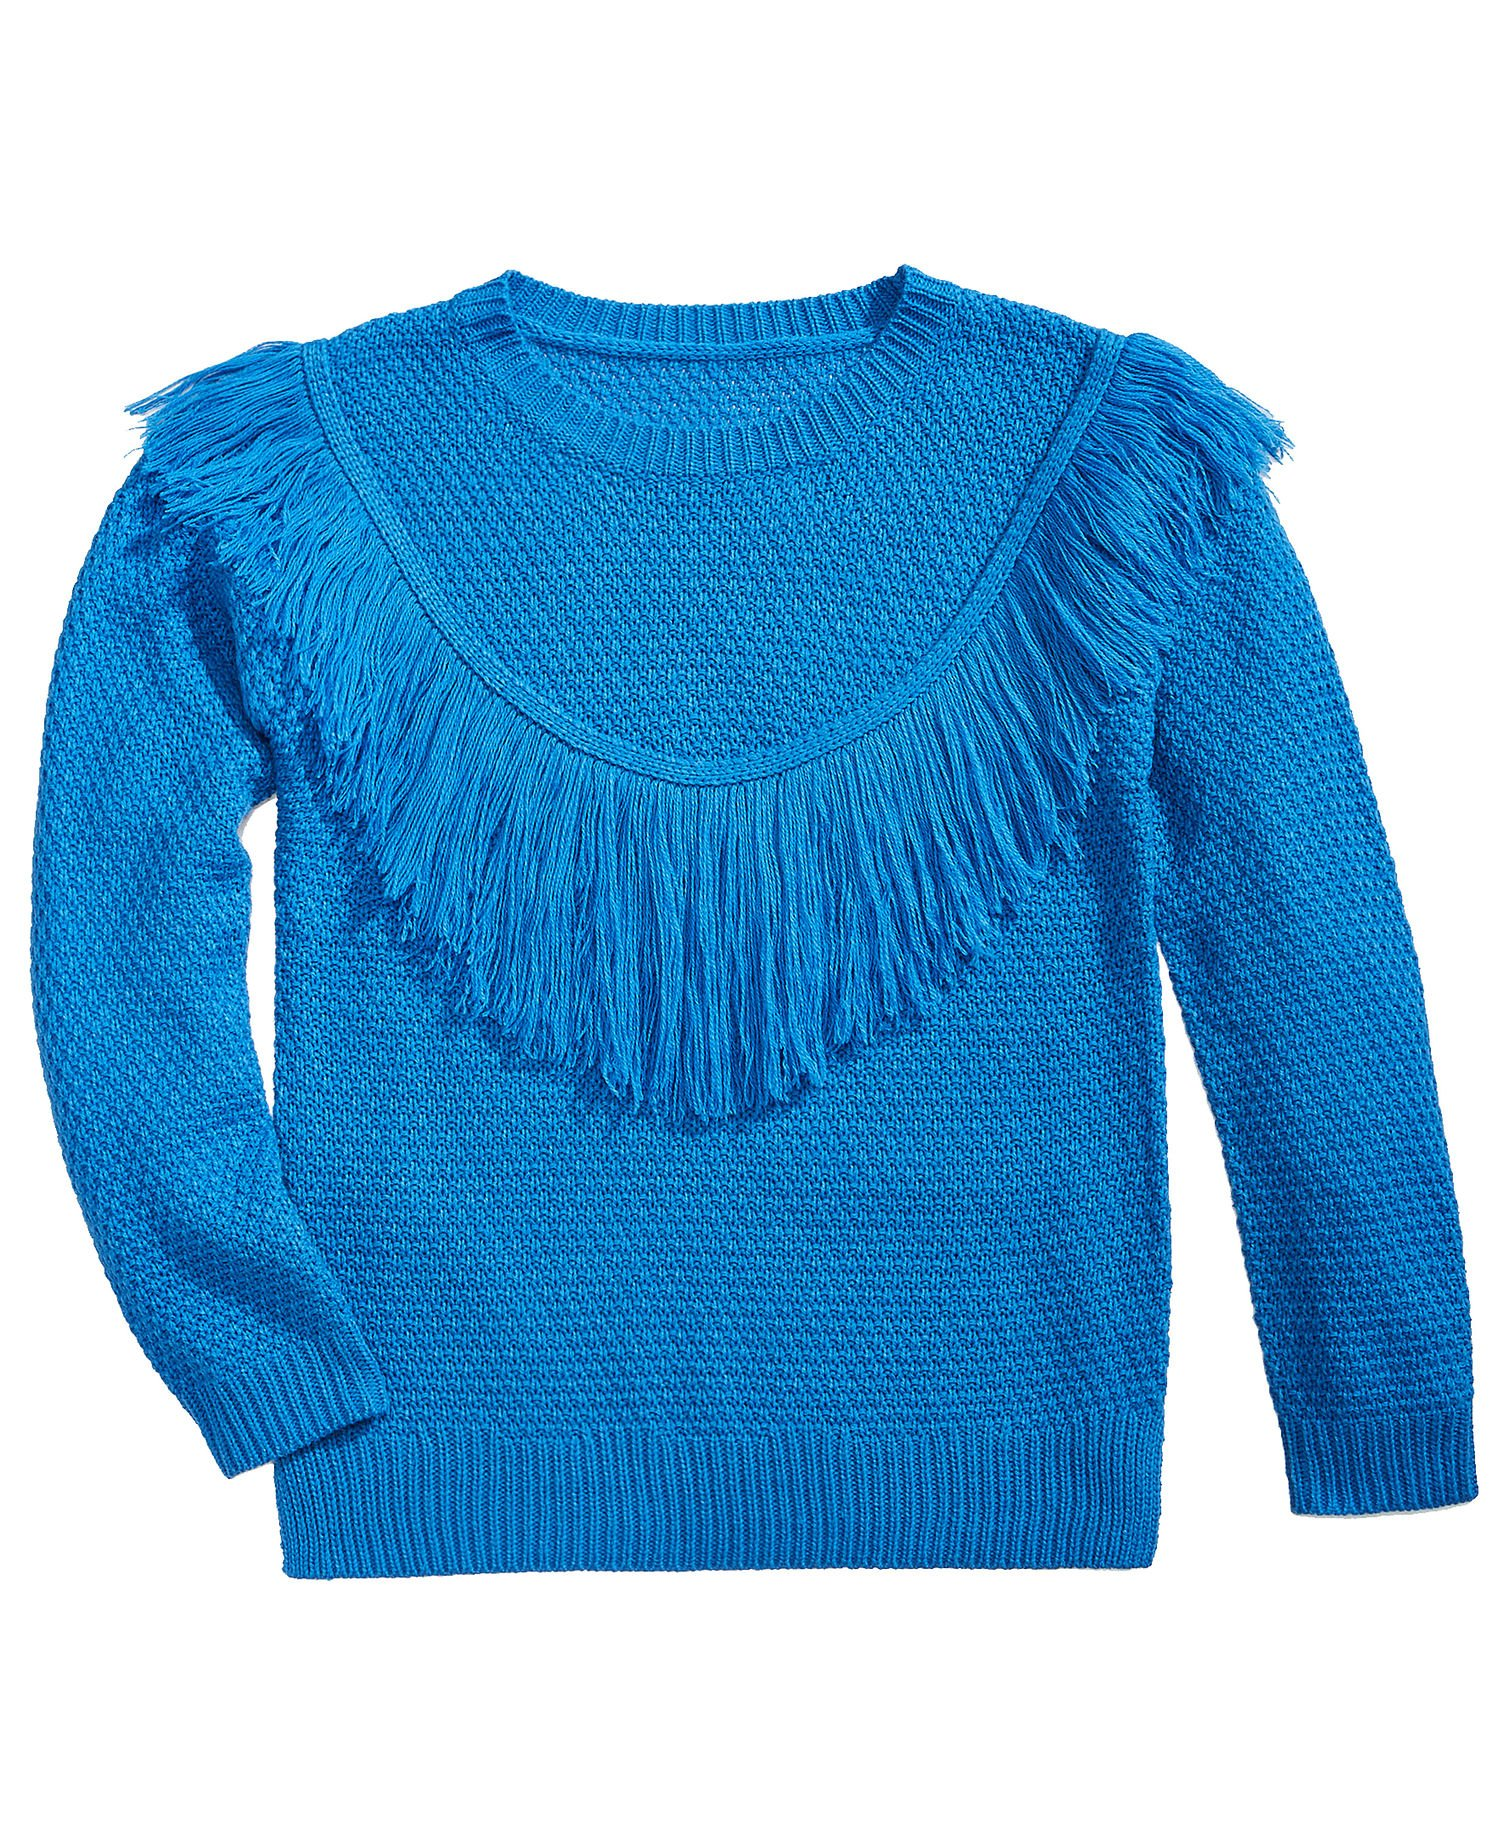 Pink Republic Big Girls (7-16) Fringe-Front Sweater Pom Pom Blue Large by Pink Republic (Image #1)